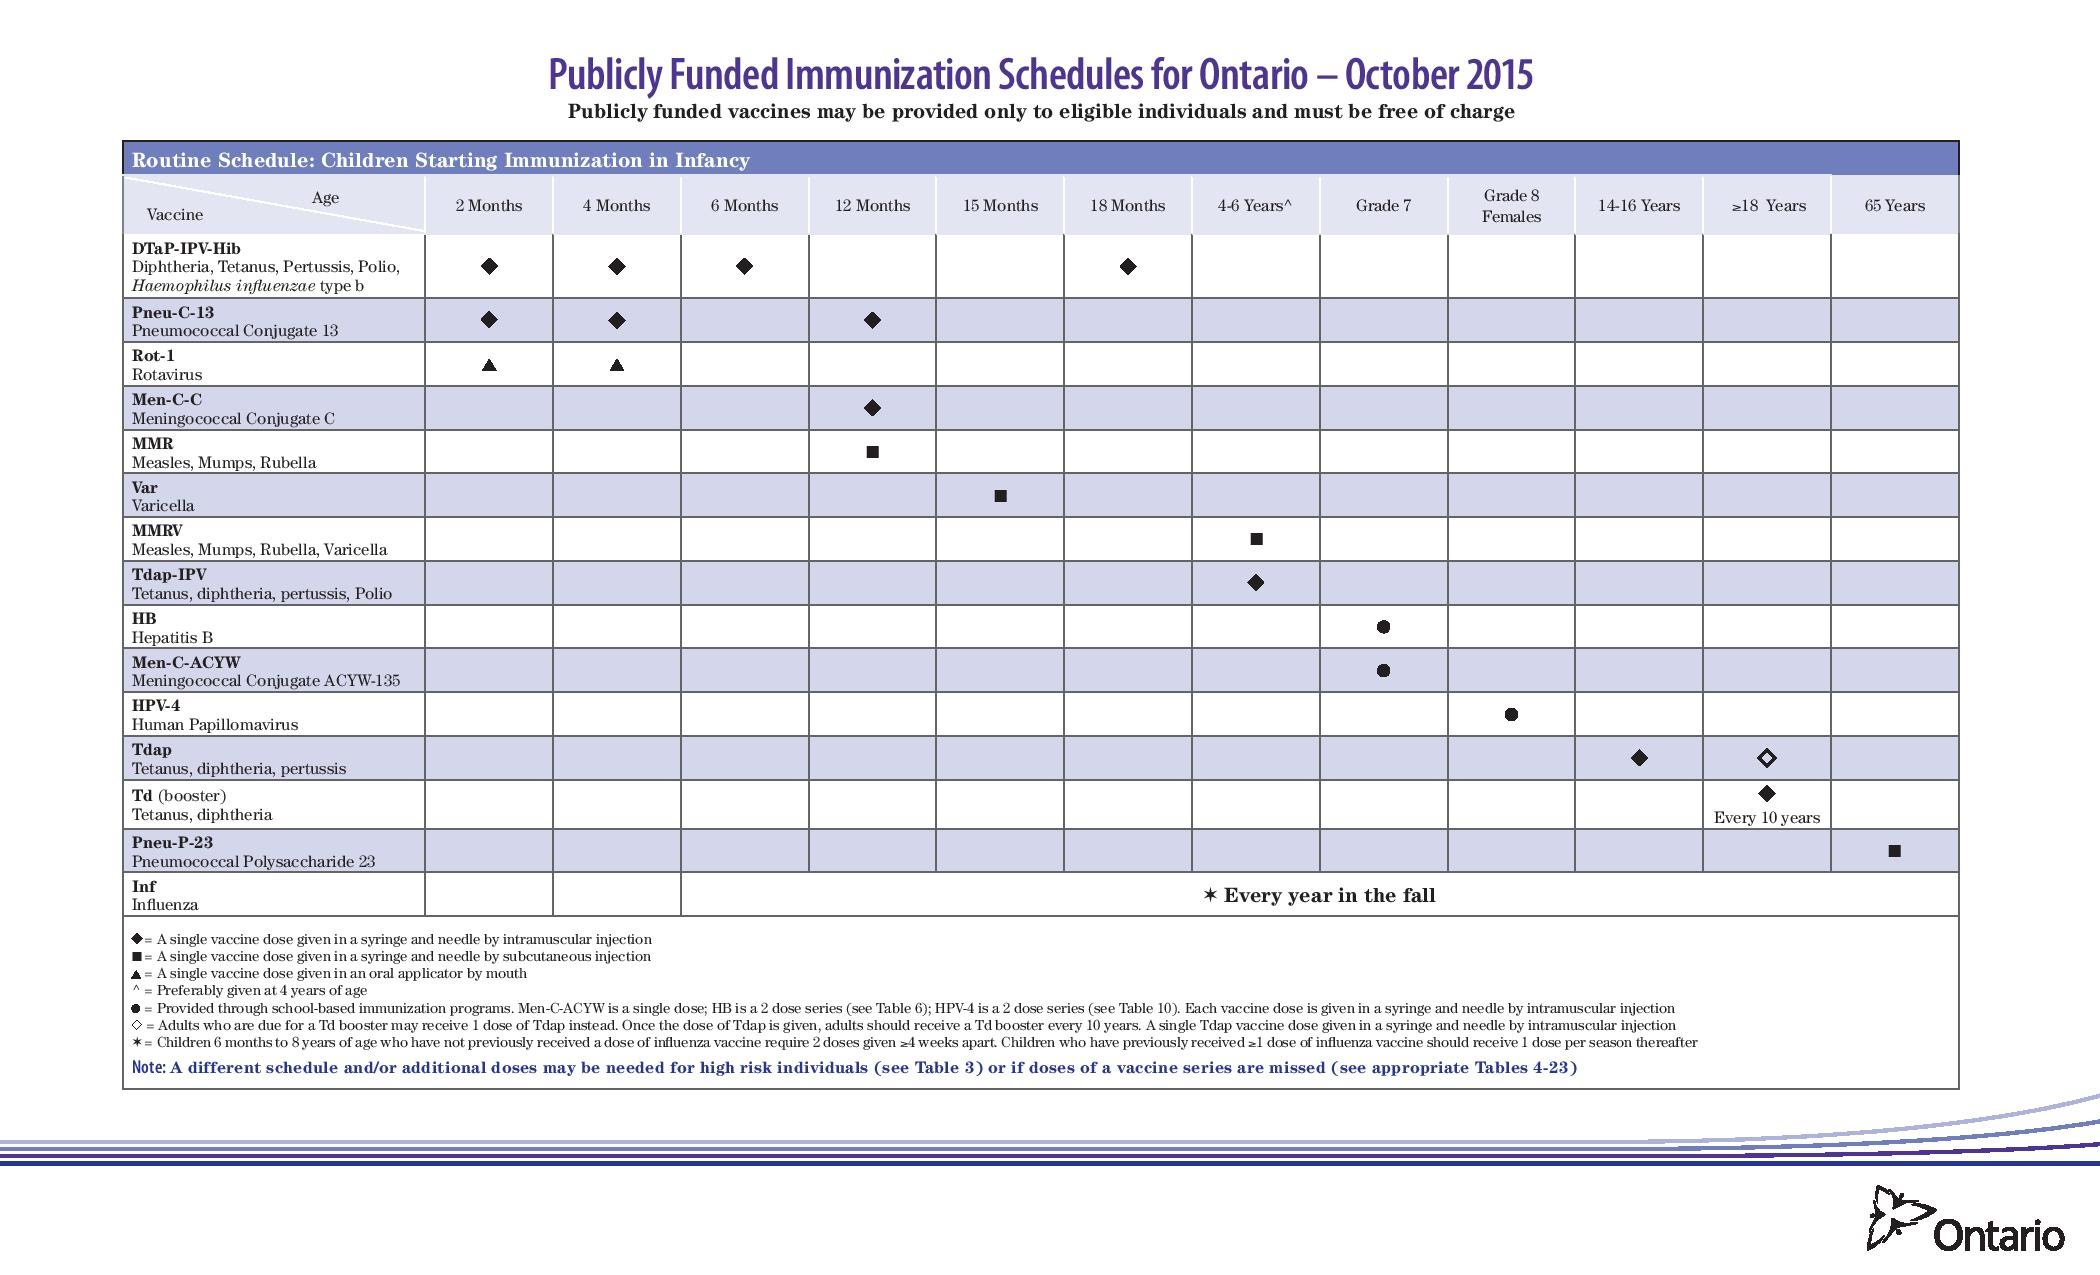 https://www.kflaph.ca/en/clinics-and-classes/Immunization-Clinics.aspx